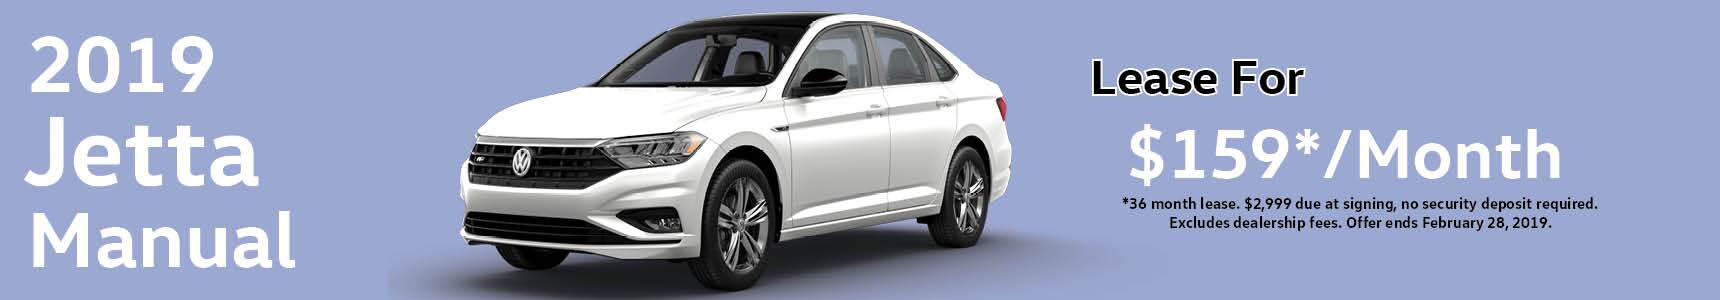 banner for the 2019 VW Jetta lease